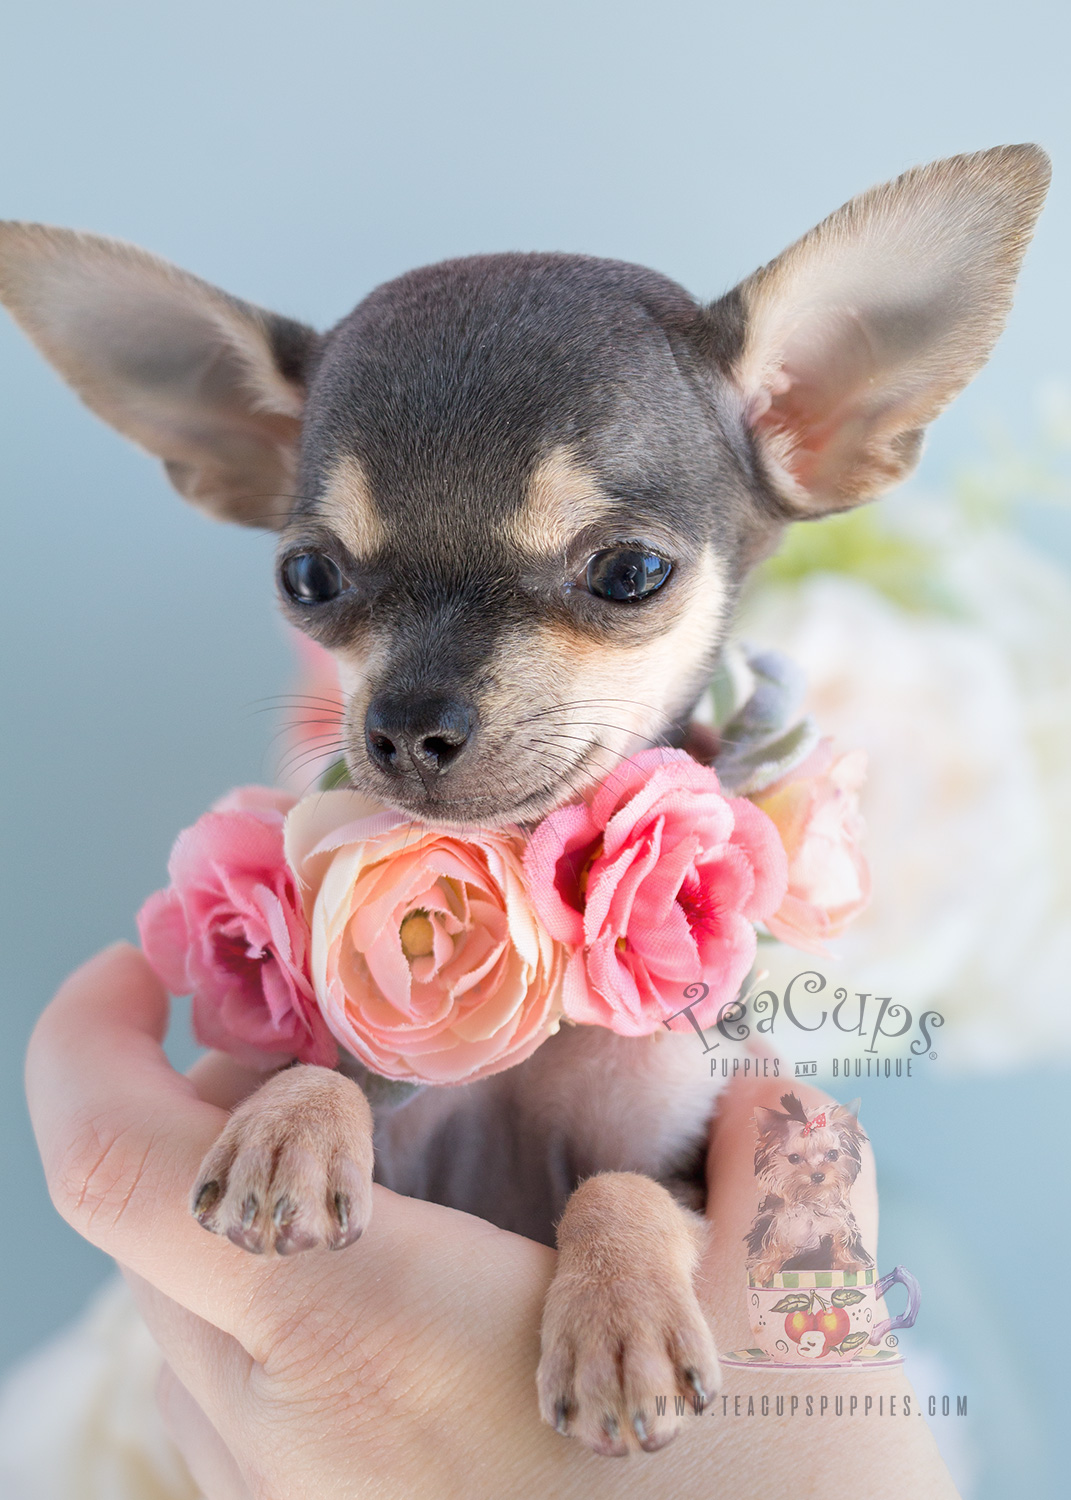 chihuahua puppiesfor sale blue chihuahua puppies teacups puppies boutique 2032